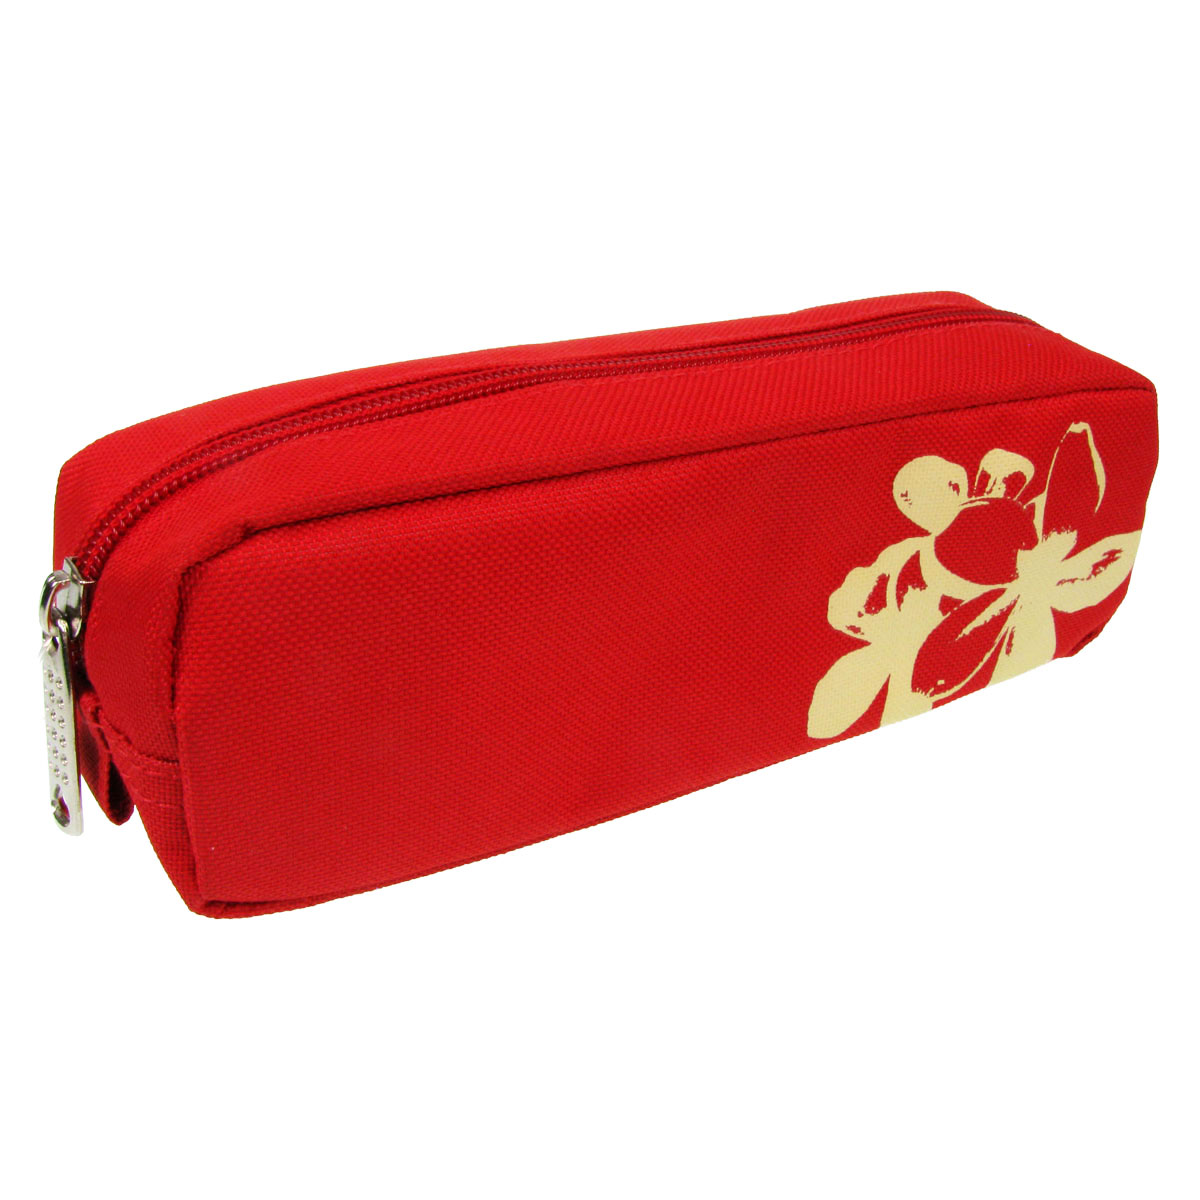 Modella Red Pencil Case Style Cosmetic Toiletry Bag Ebay